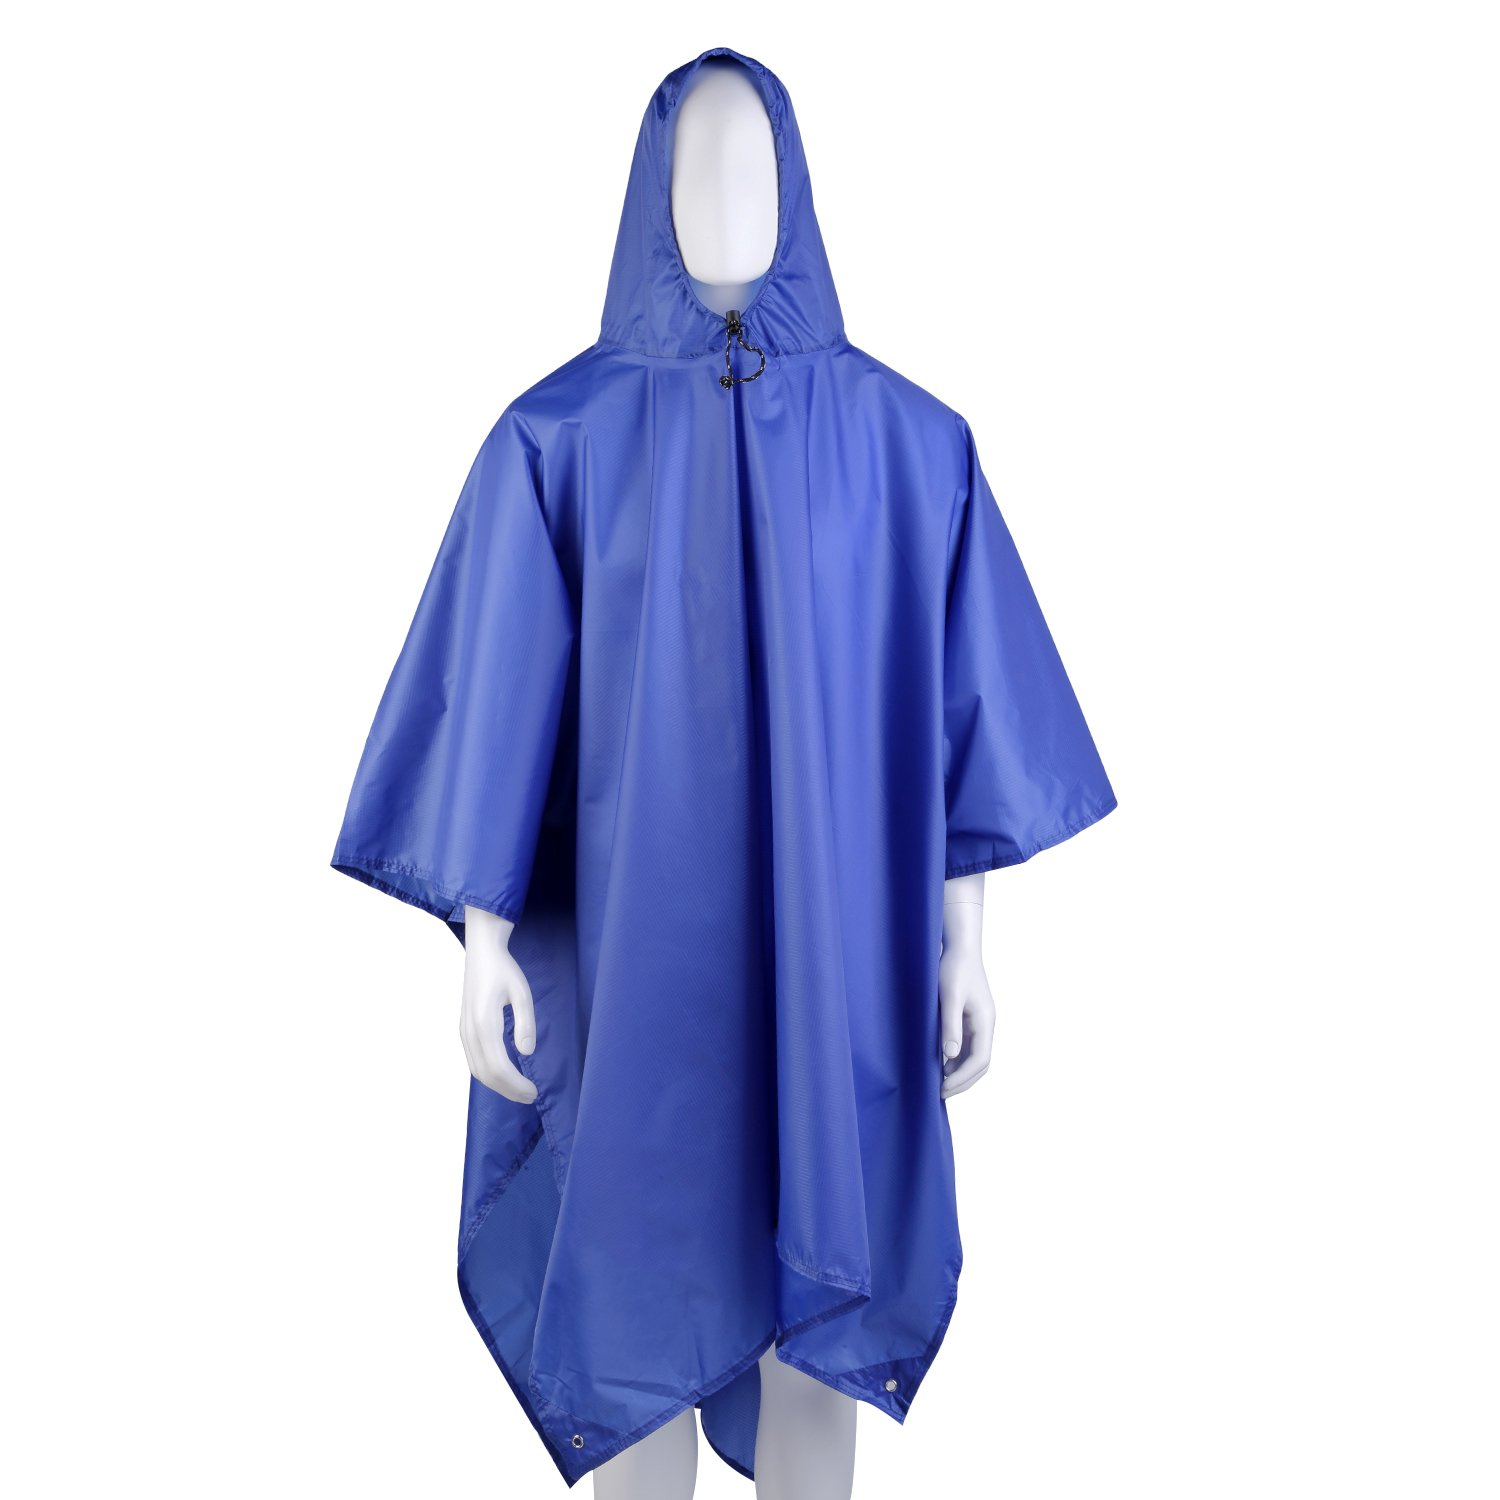 OUTAD Waterproof Rain Poncho,Unisex,Backpack Cover, Tarp (Blue) Unisex,Backpack Cover